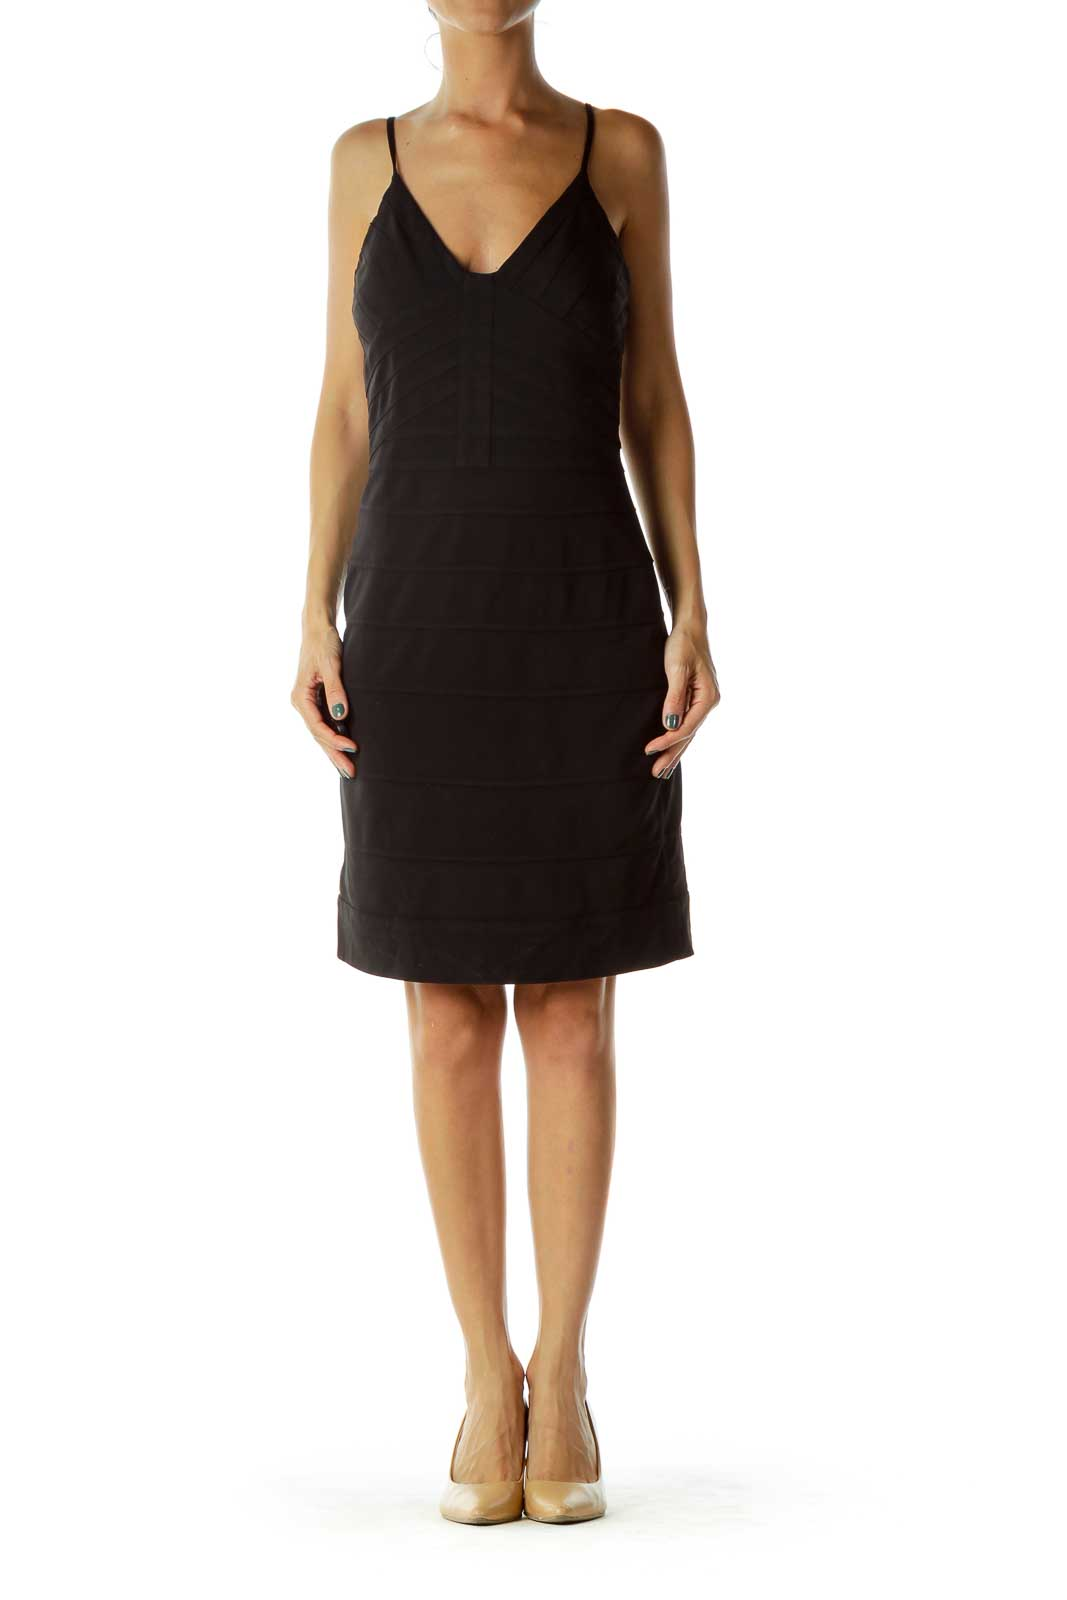 Black Stitched Bodycon Cocktail Dress